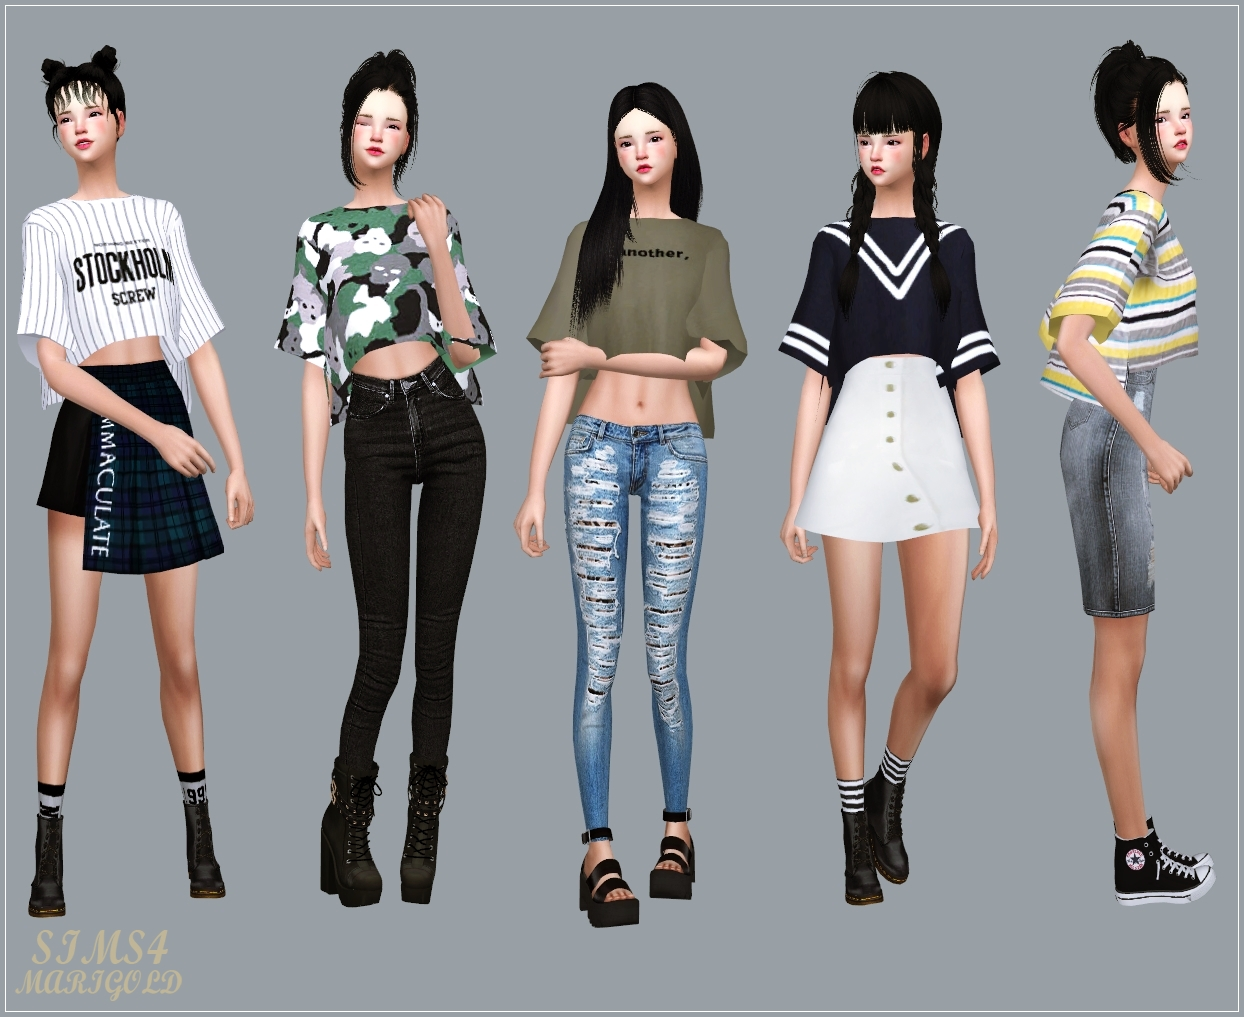 Sims 4 Cc T Shirts - Catalyst PSM